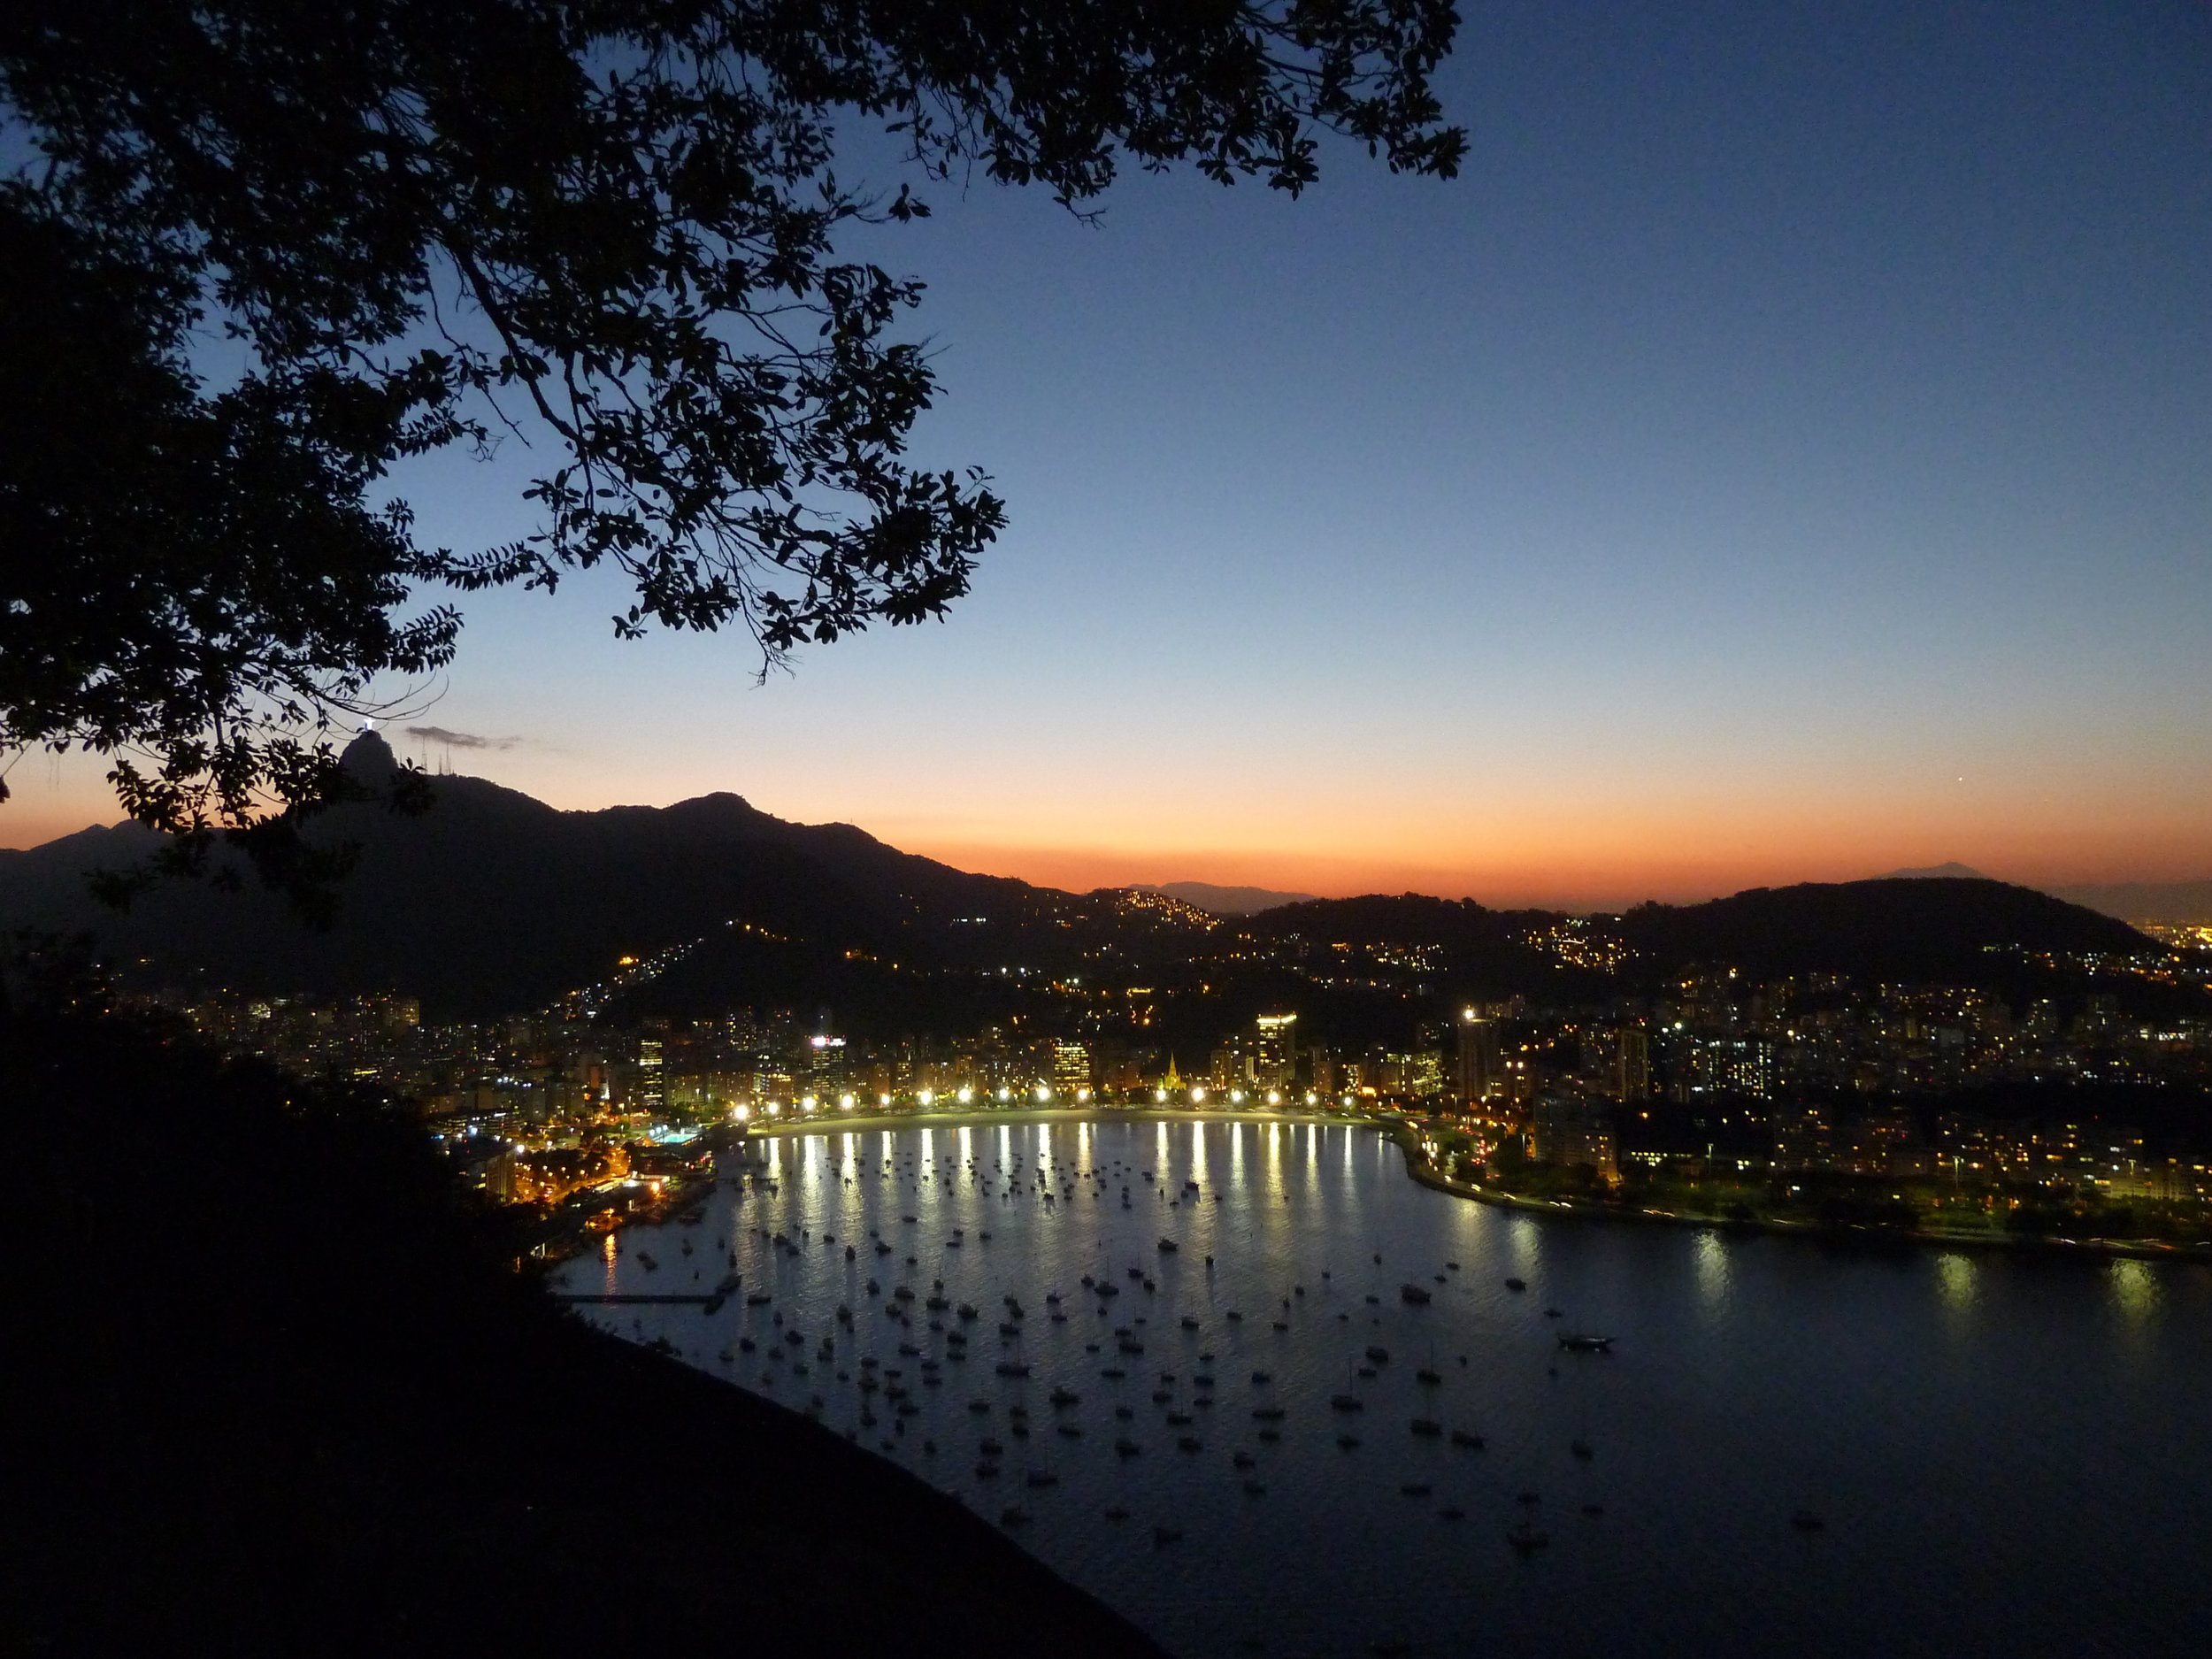 Sunset over Rio de Janeiro, viewed from Sugarloaf Mountain